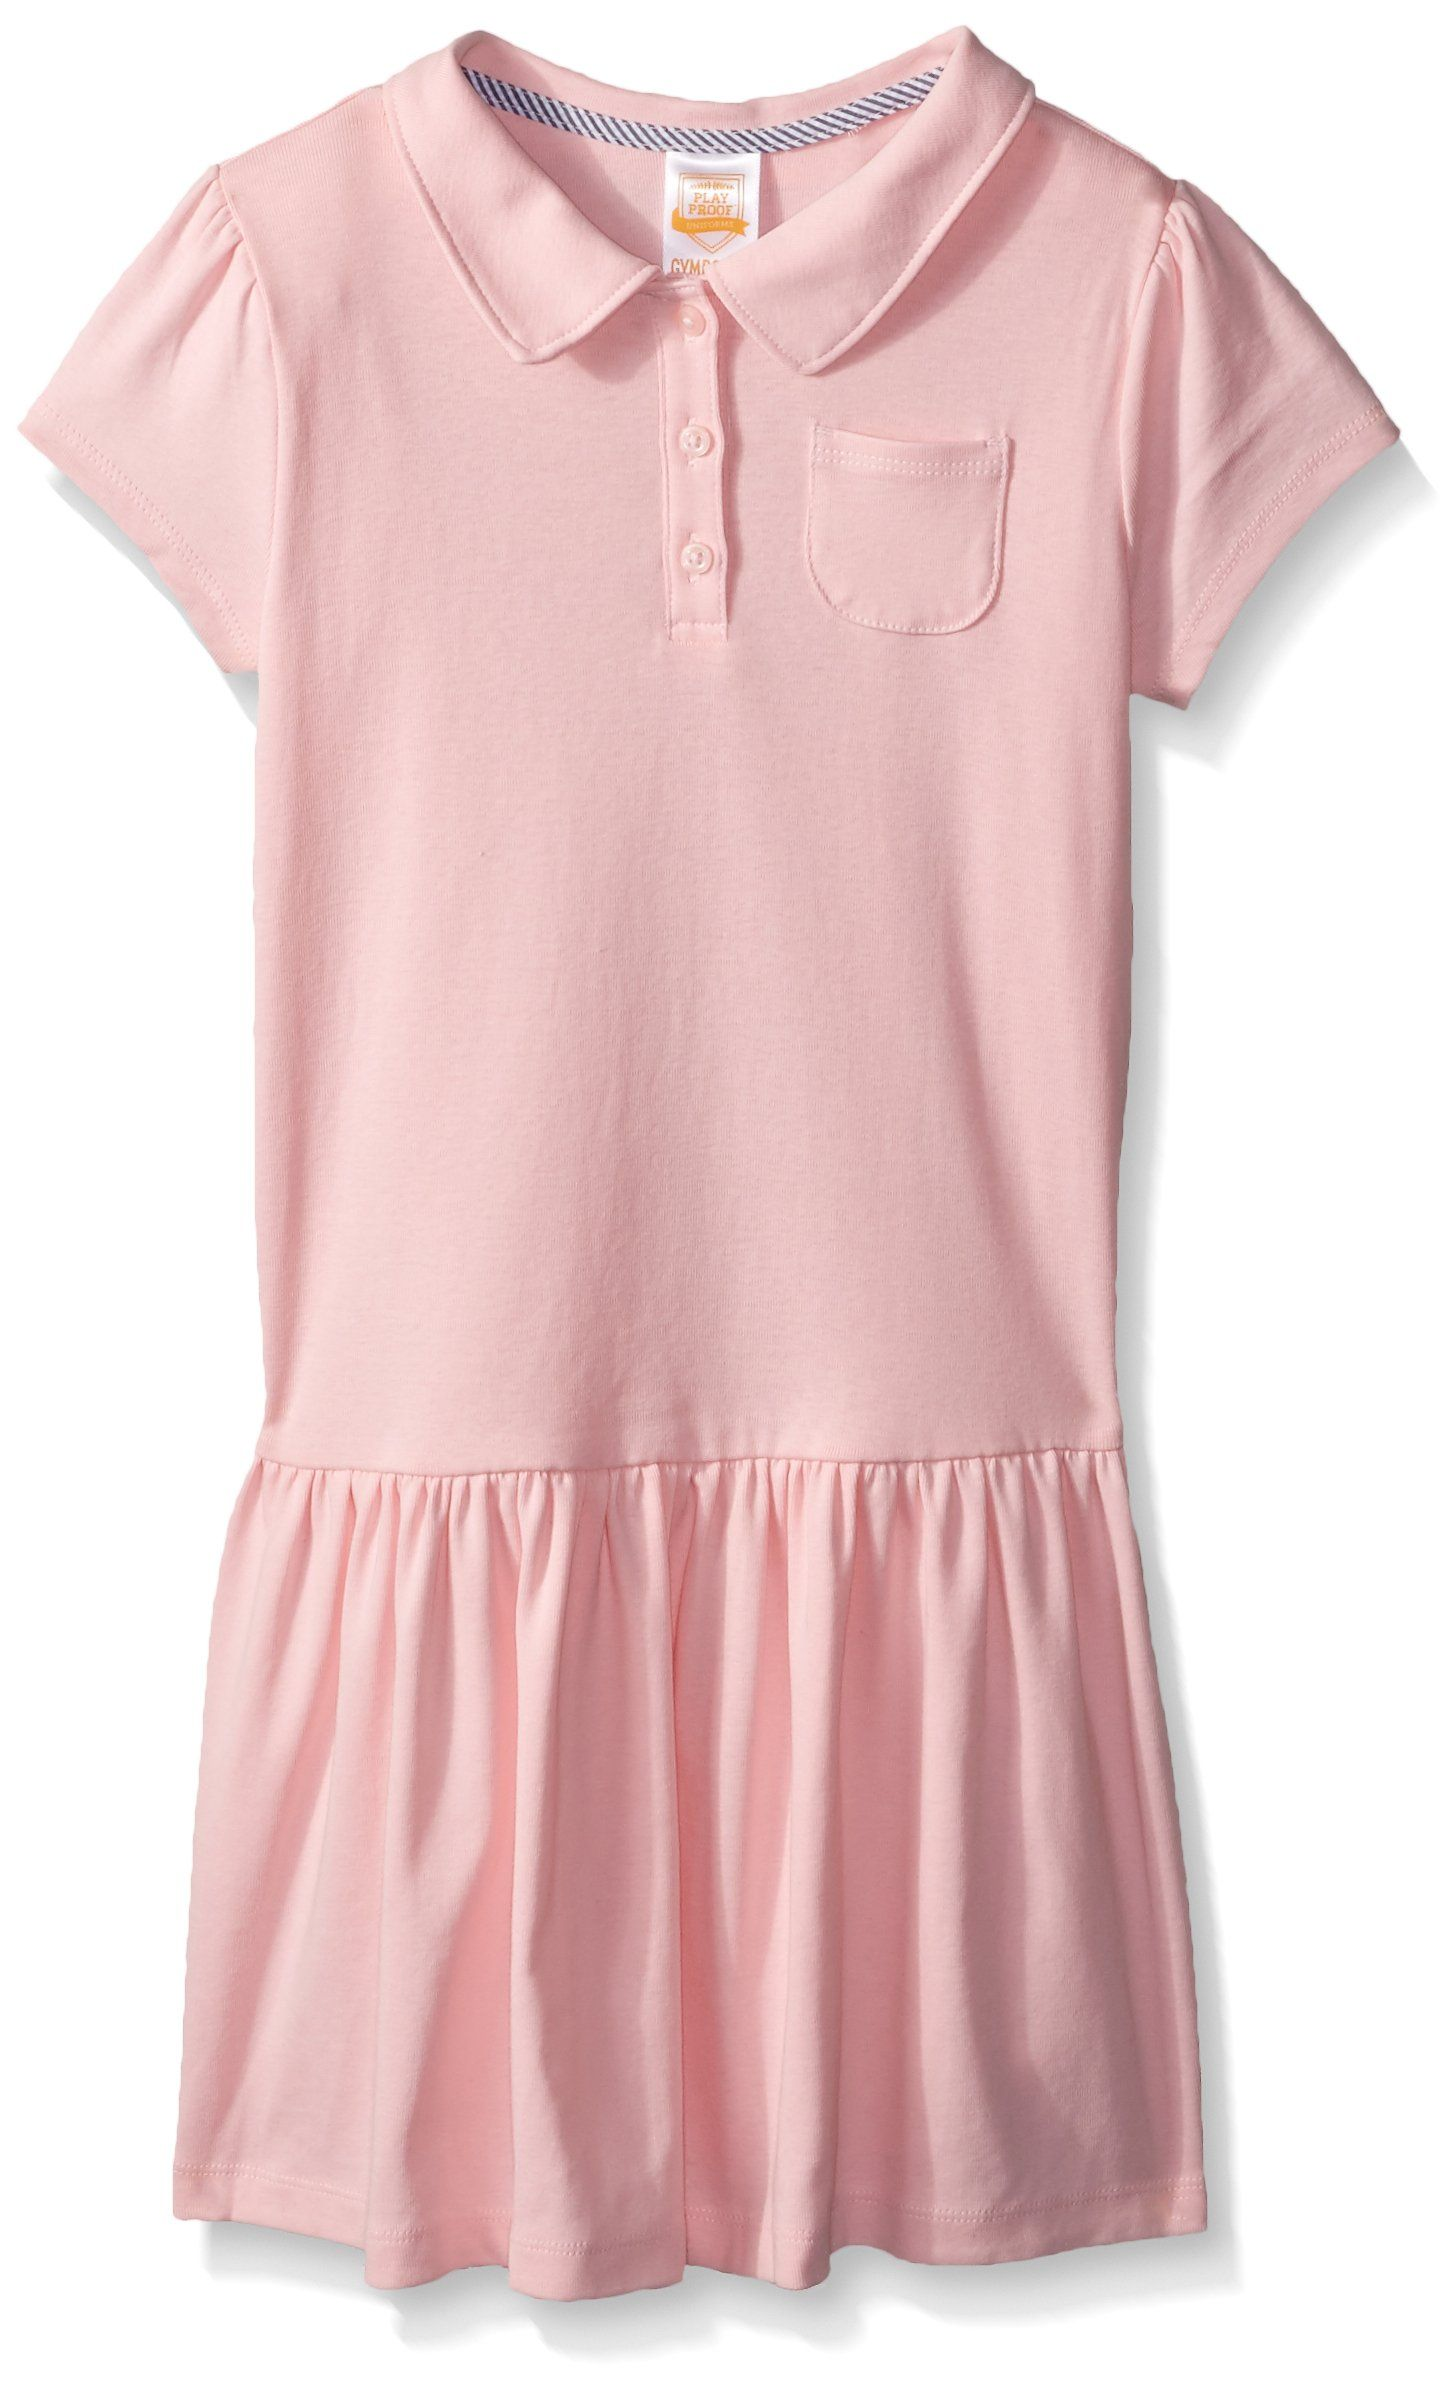 Pink Polo Shirts For Toddlers